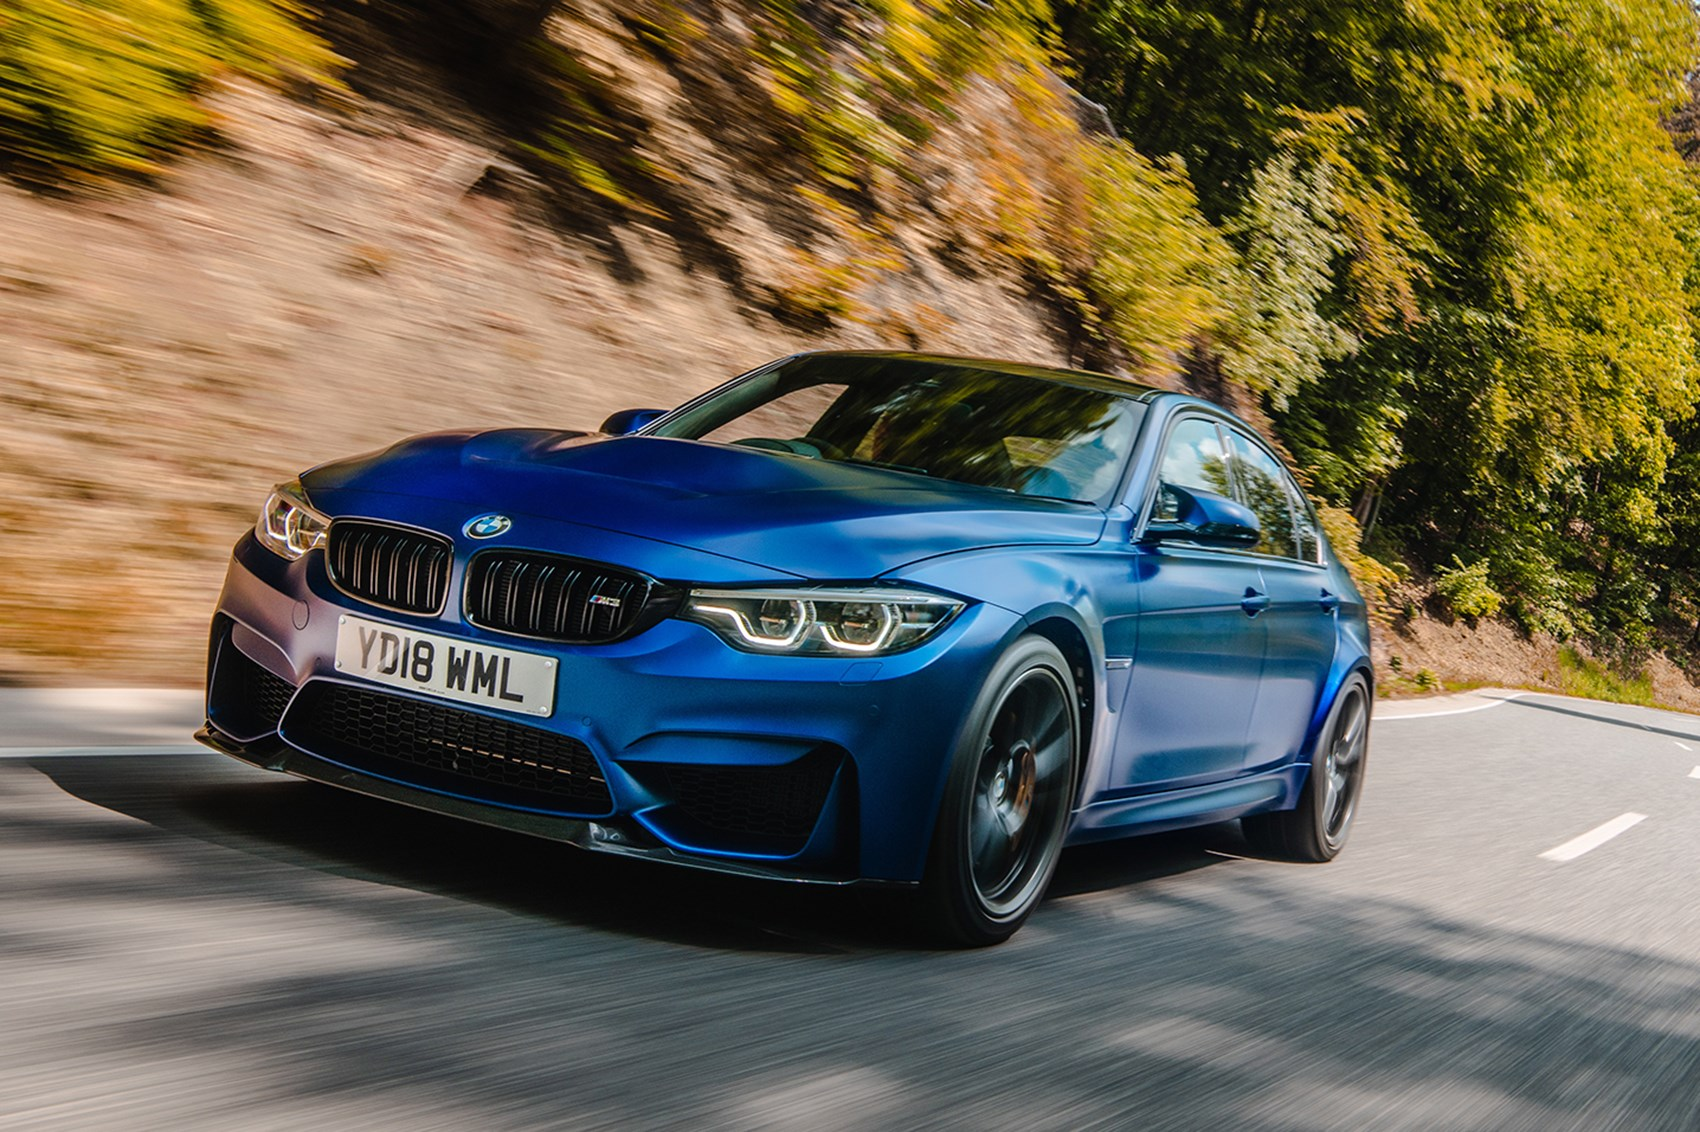 Bmw M3 Cs 2018 Review The Best F80 M3 Yet Car Magazine